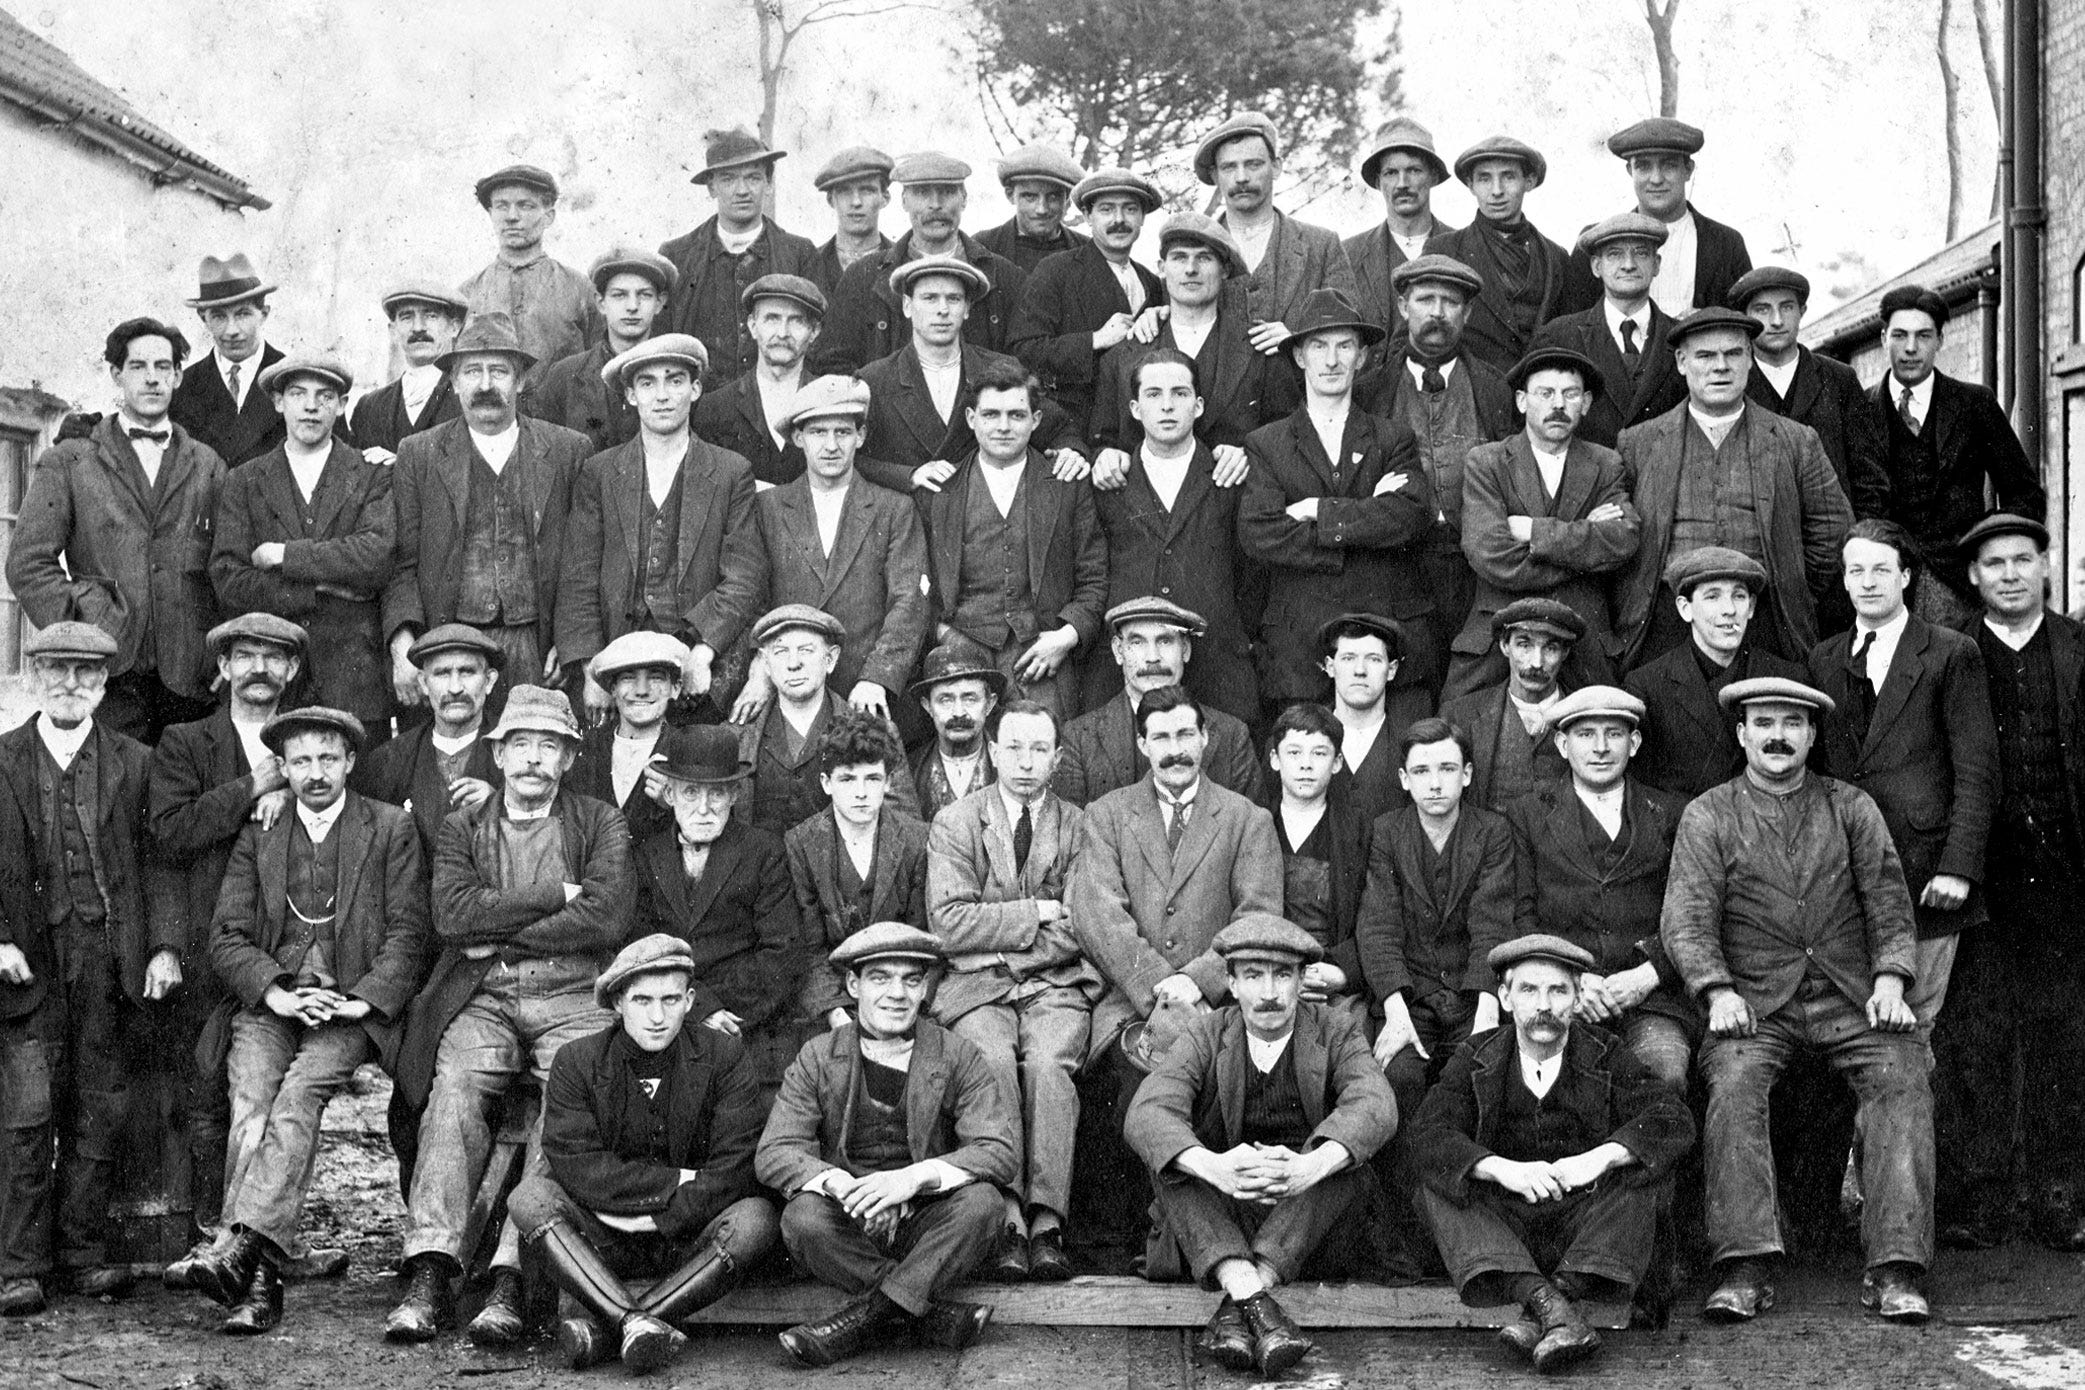 The Tanyard workers in 1935